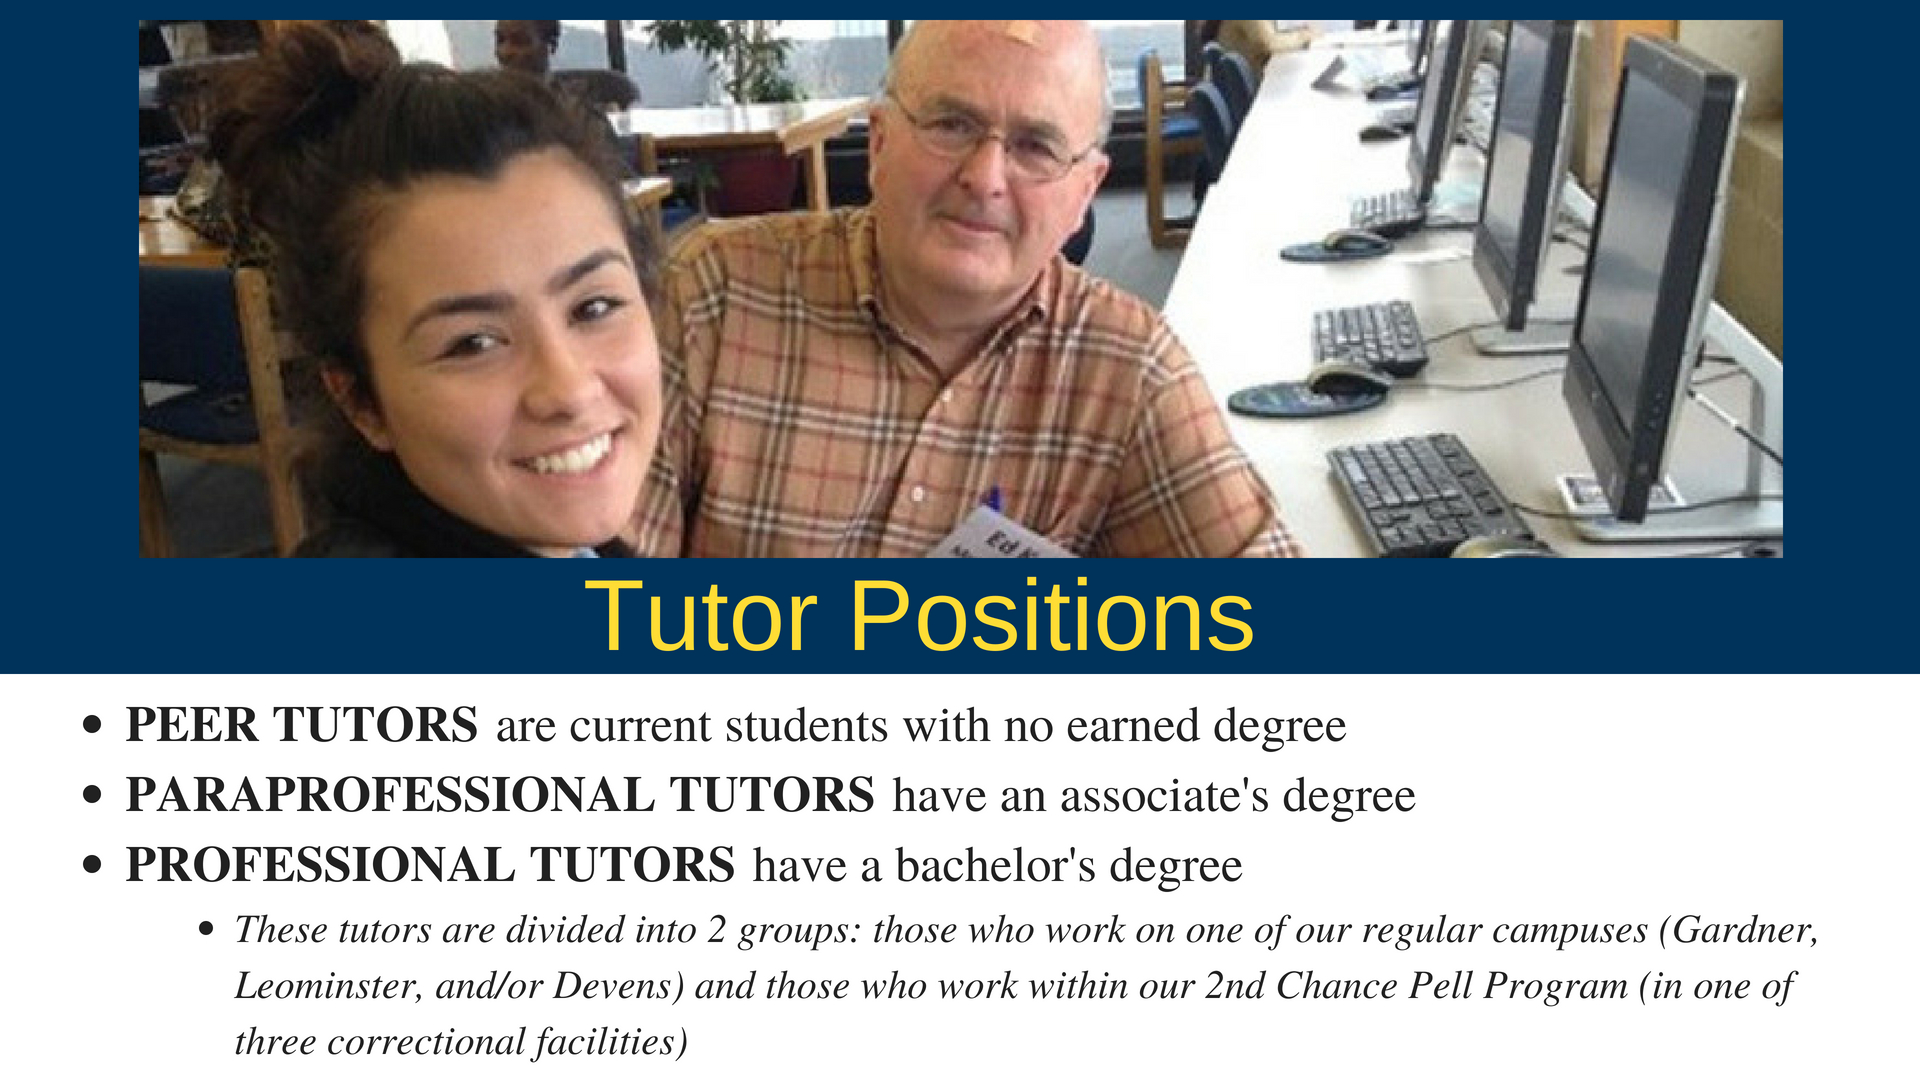 tutor positions- large banner